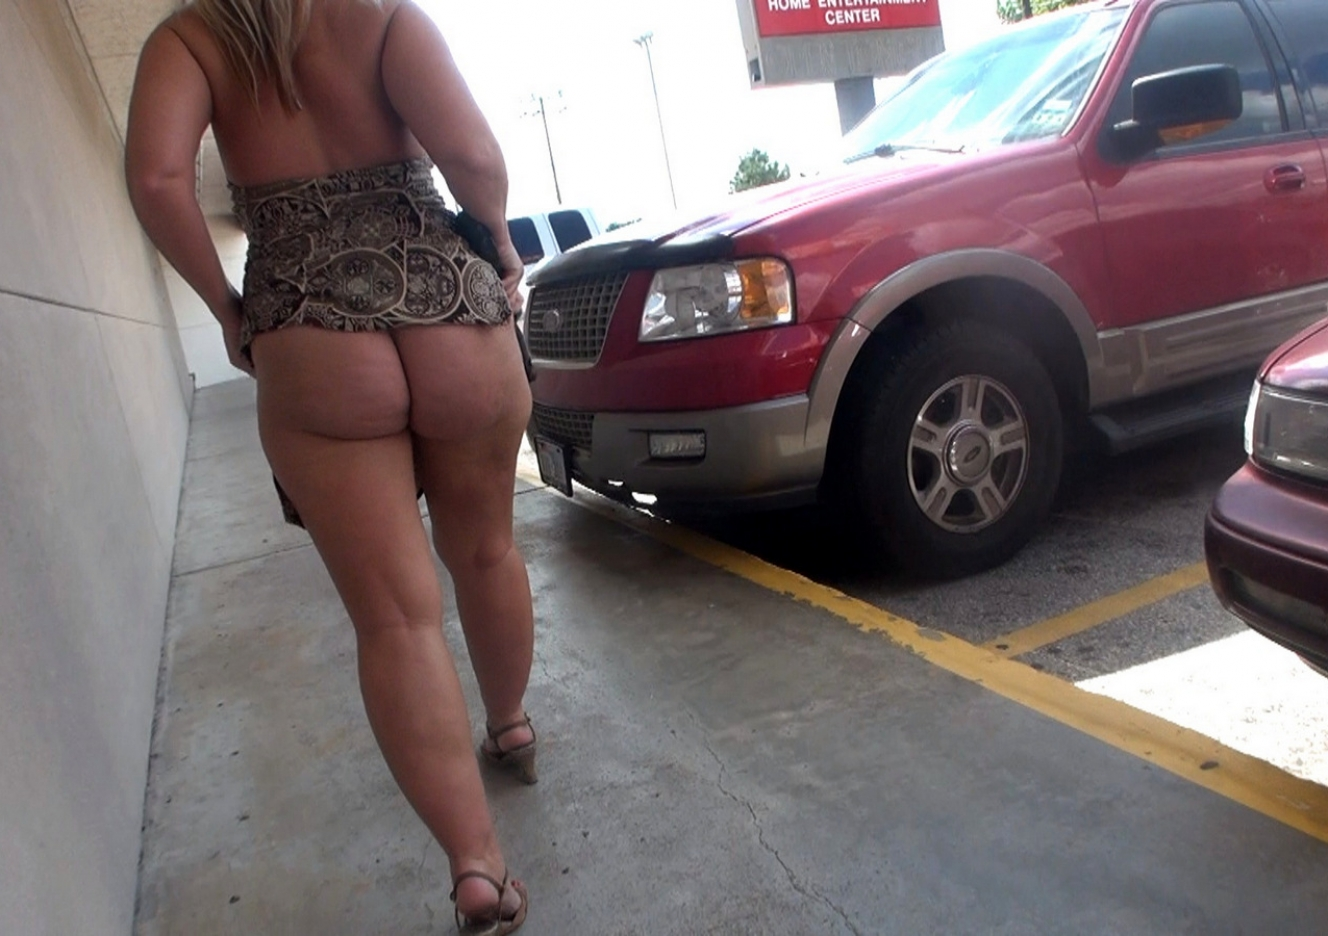 content/20121211_ms_naughtyinpublicplaces/0.jpg